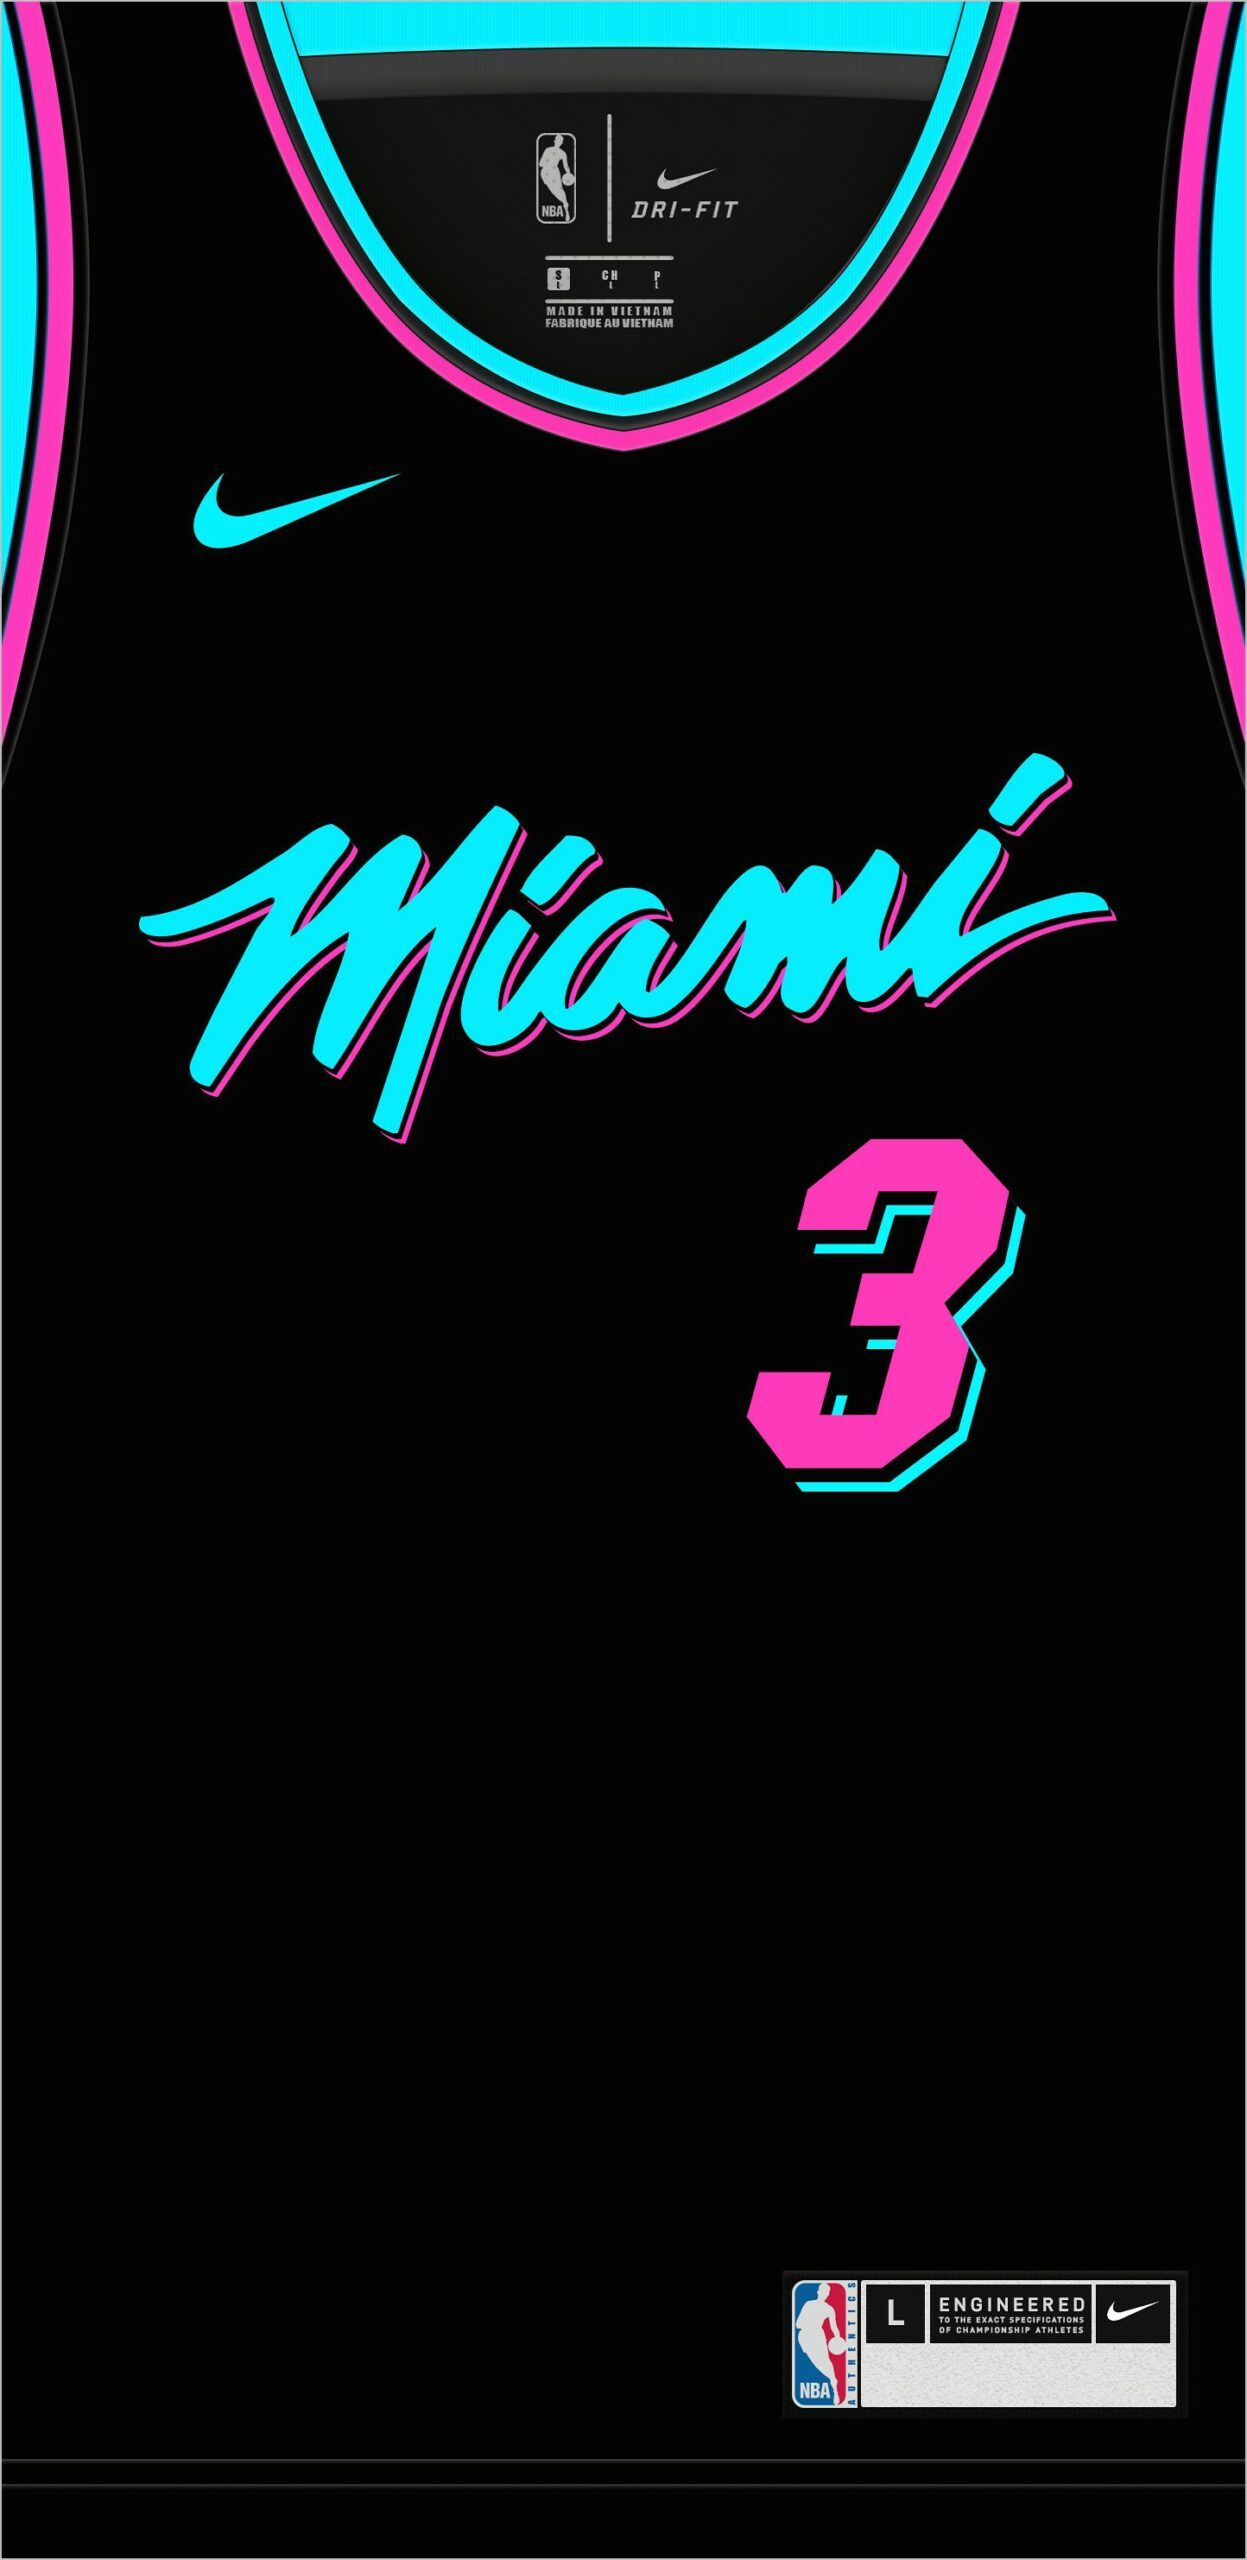 Nba Miami Vice Wallpaper 4k In 2020 Nba Miami Heat Miami Vice Miami Heat Logo